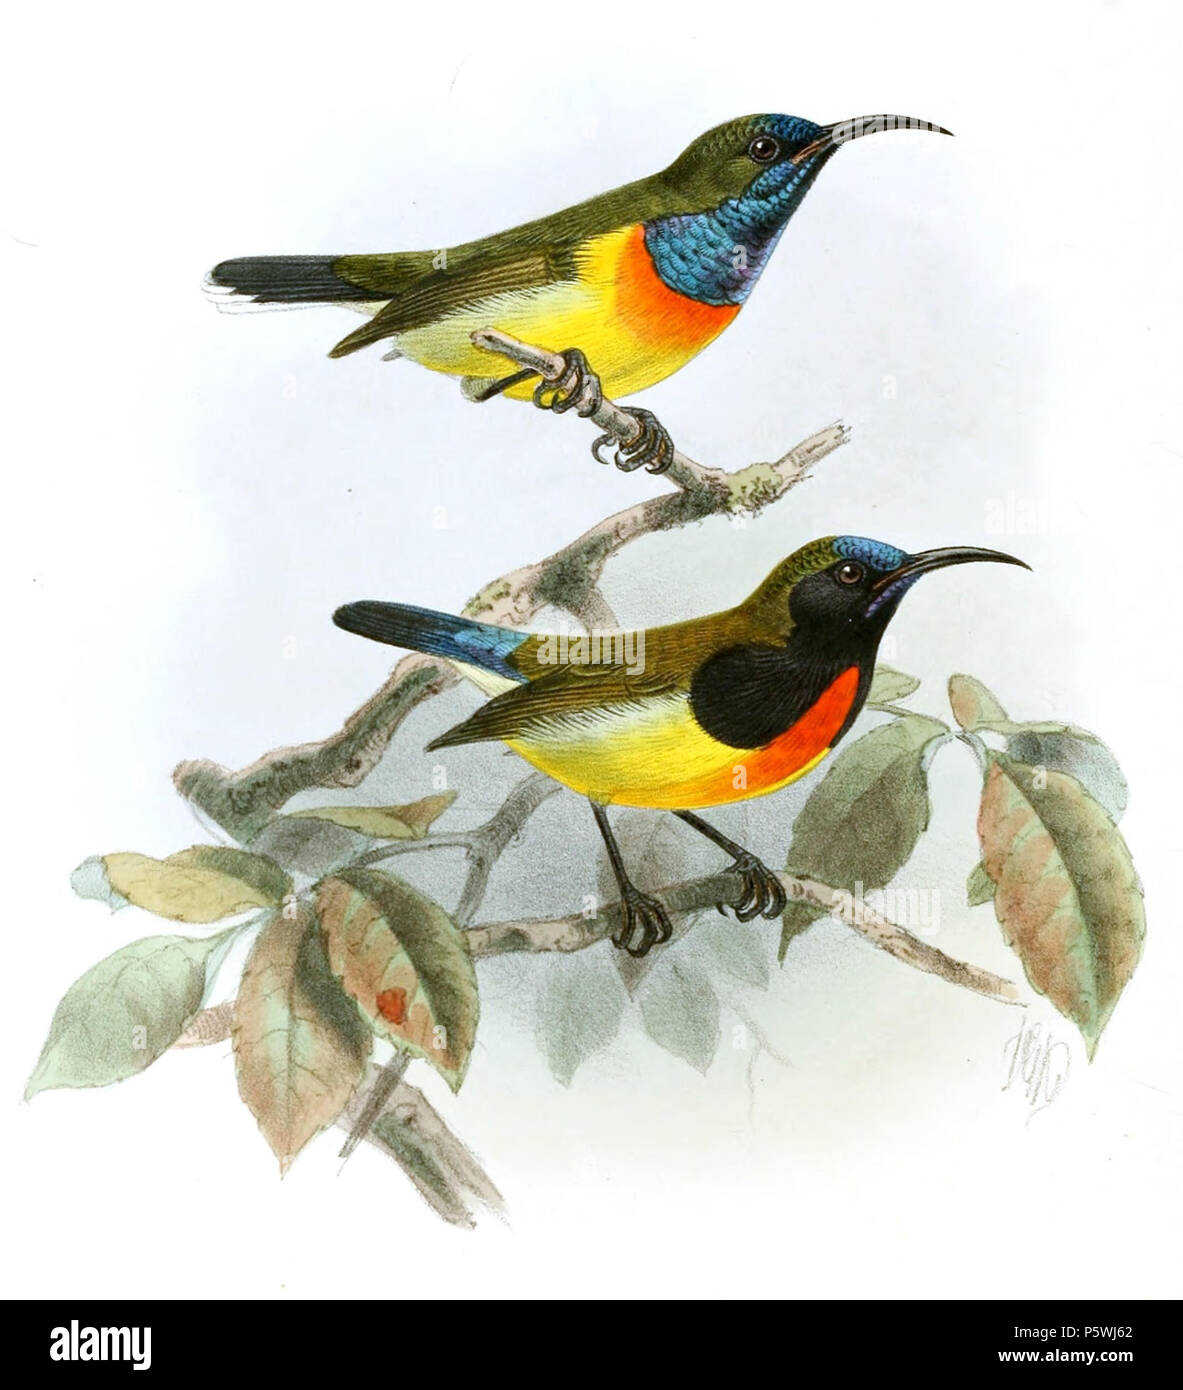 N/A. Cinnyris jugularis aurora , Aethopyga flagrans . 1880.   John Gerrard Keulemans  (1842–1912)      Alternative names Johannes Gerardus Keulemans; J. G. Keulemans  Description Dutch ornithologist and artist  Date of birth/death 8 June 1842 29 December 1912  Location of birth/death Rotterdam London  Authority control  : Q1335286 VIAF:42113661 ISNI:0000 0000 6313 981X ULAN:500041975 LCCN:no98083374 NLA:35268760 WorldCat 349 Cinnyris jugularis aurora - Aethopyga flagrans Keulemans - Stock Image